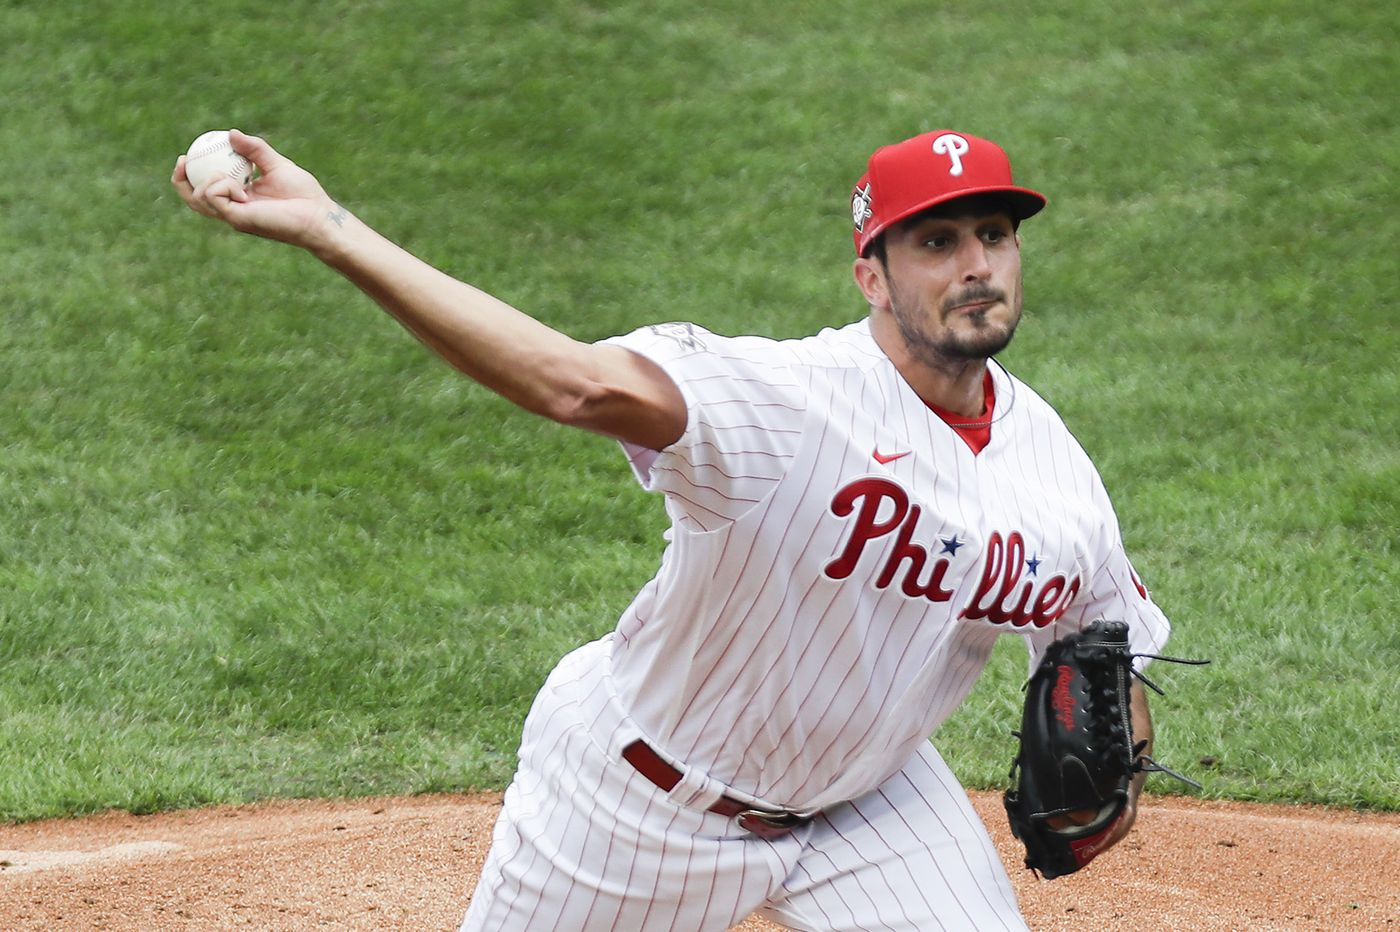 Phillies win fifth game in a row as Zach Eflin throws curve at Braves